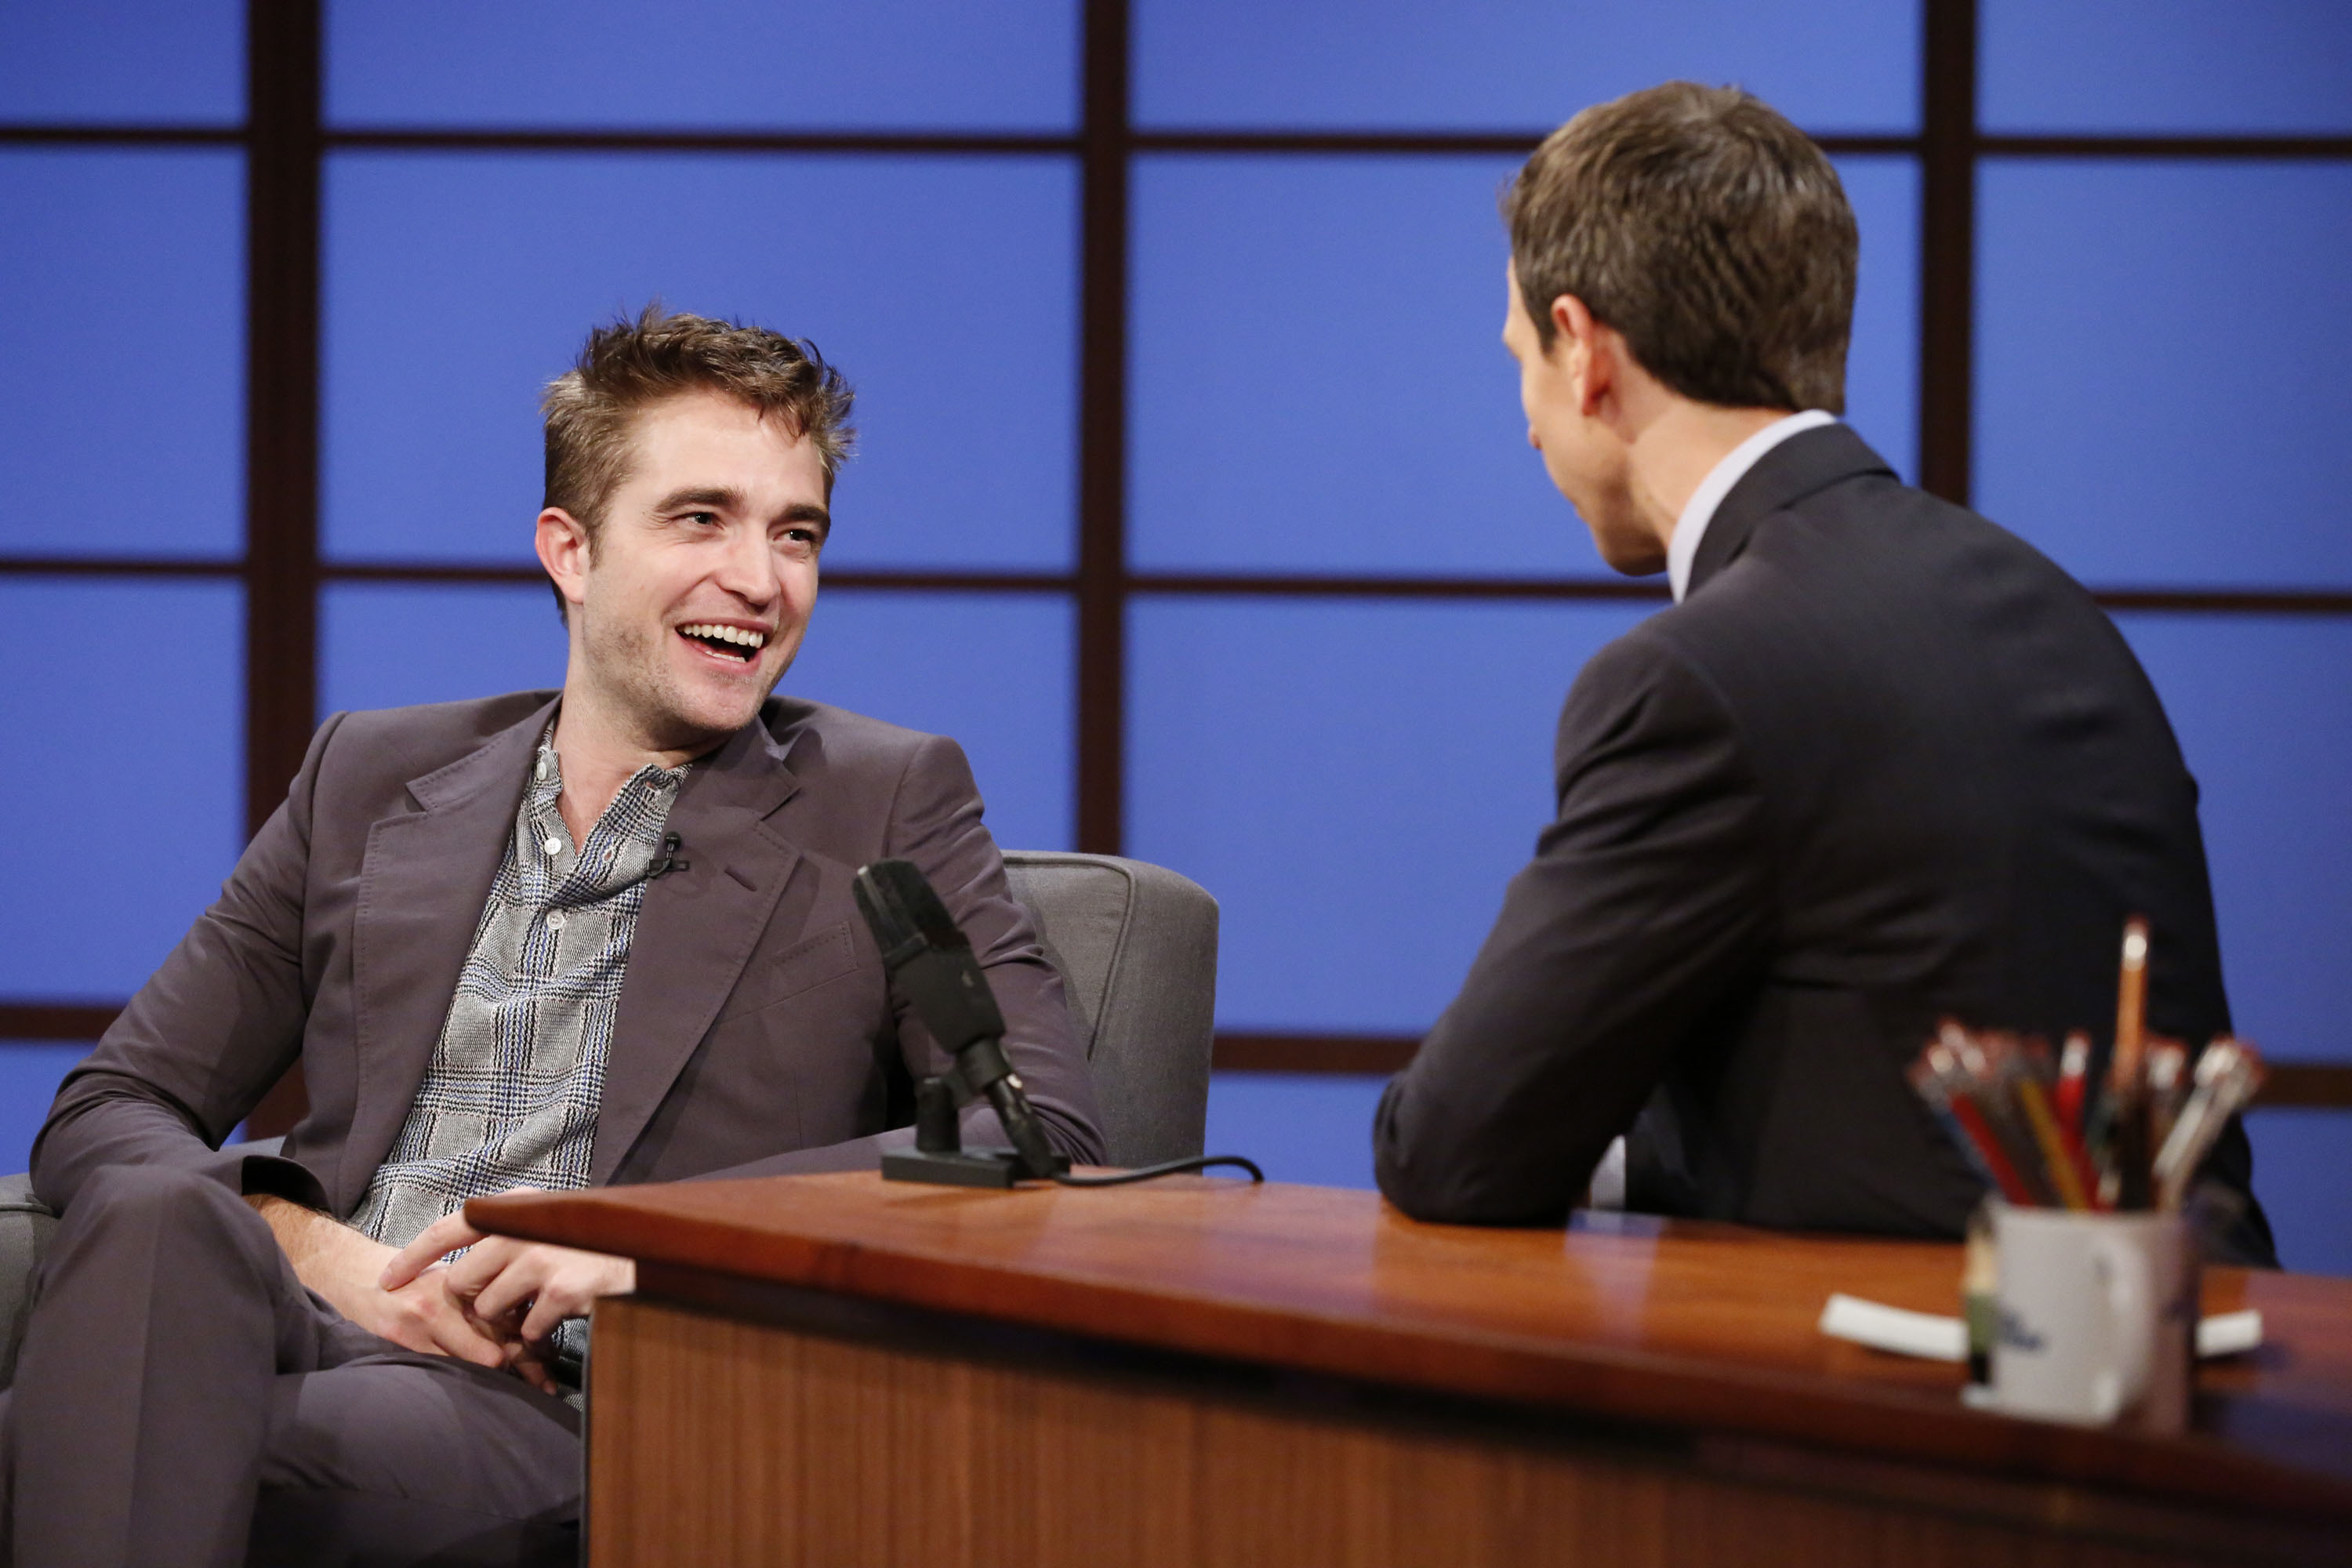 http://www.robstendreams.com/2014/06/rob-at-late-night-with-seth-meyers.html